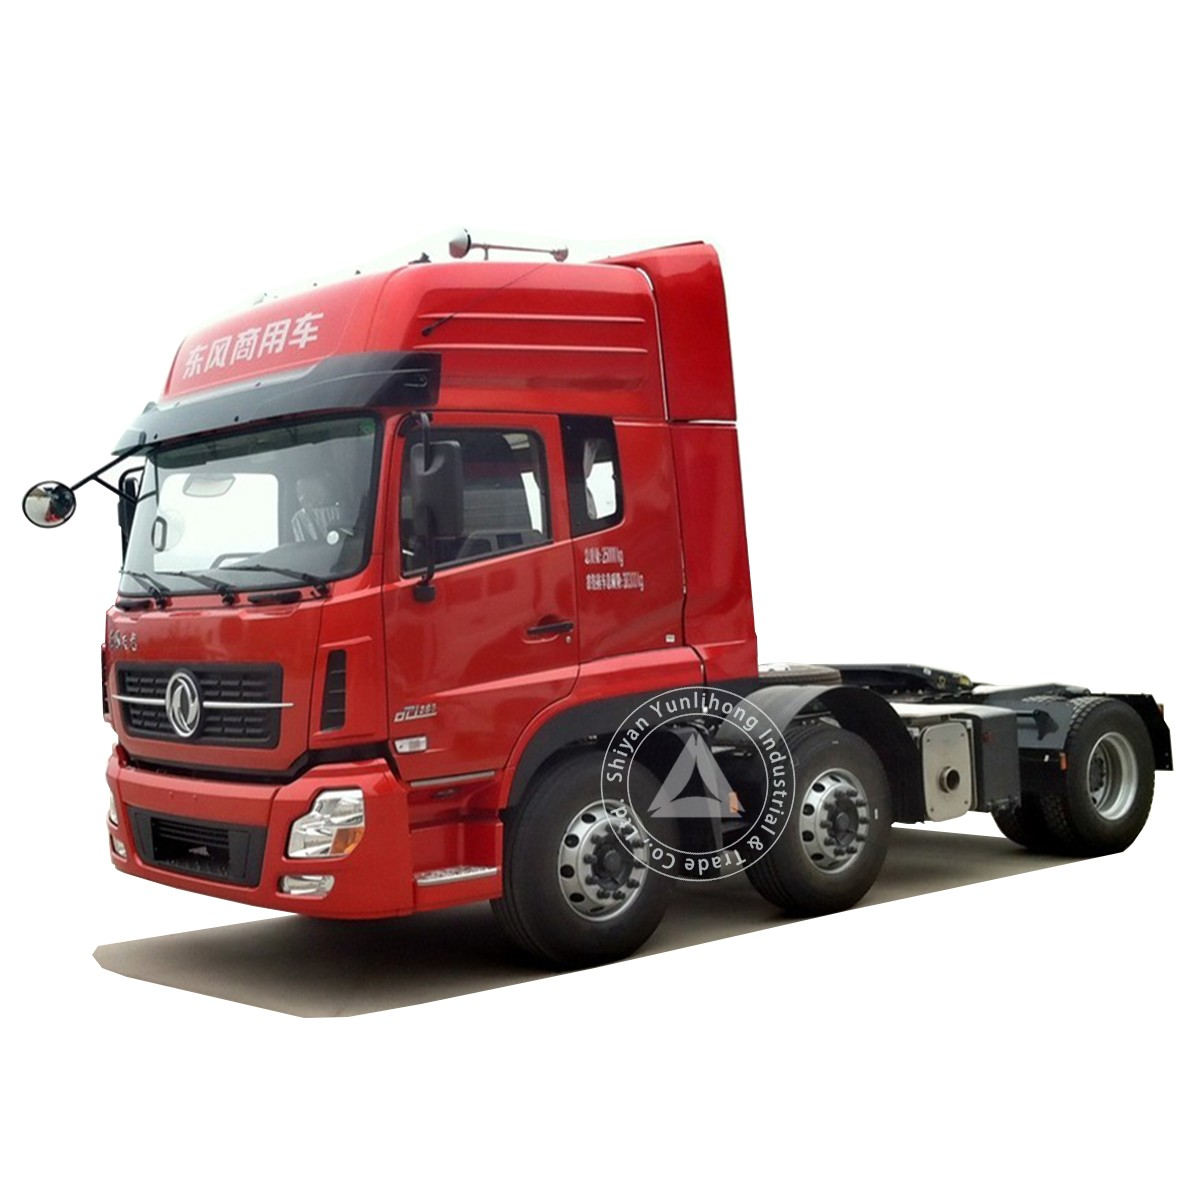 Dongfeng KL 360hp To 420hp 6x2 Tractor Truck Manufacturers, Dongfeng KL 360hp To 420hp 6x2 Tractor Truck Factory, Supply Dongfeng KL 360hp To 420hp 6x2 Tractor Truck